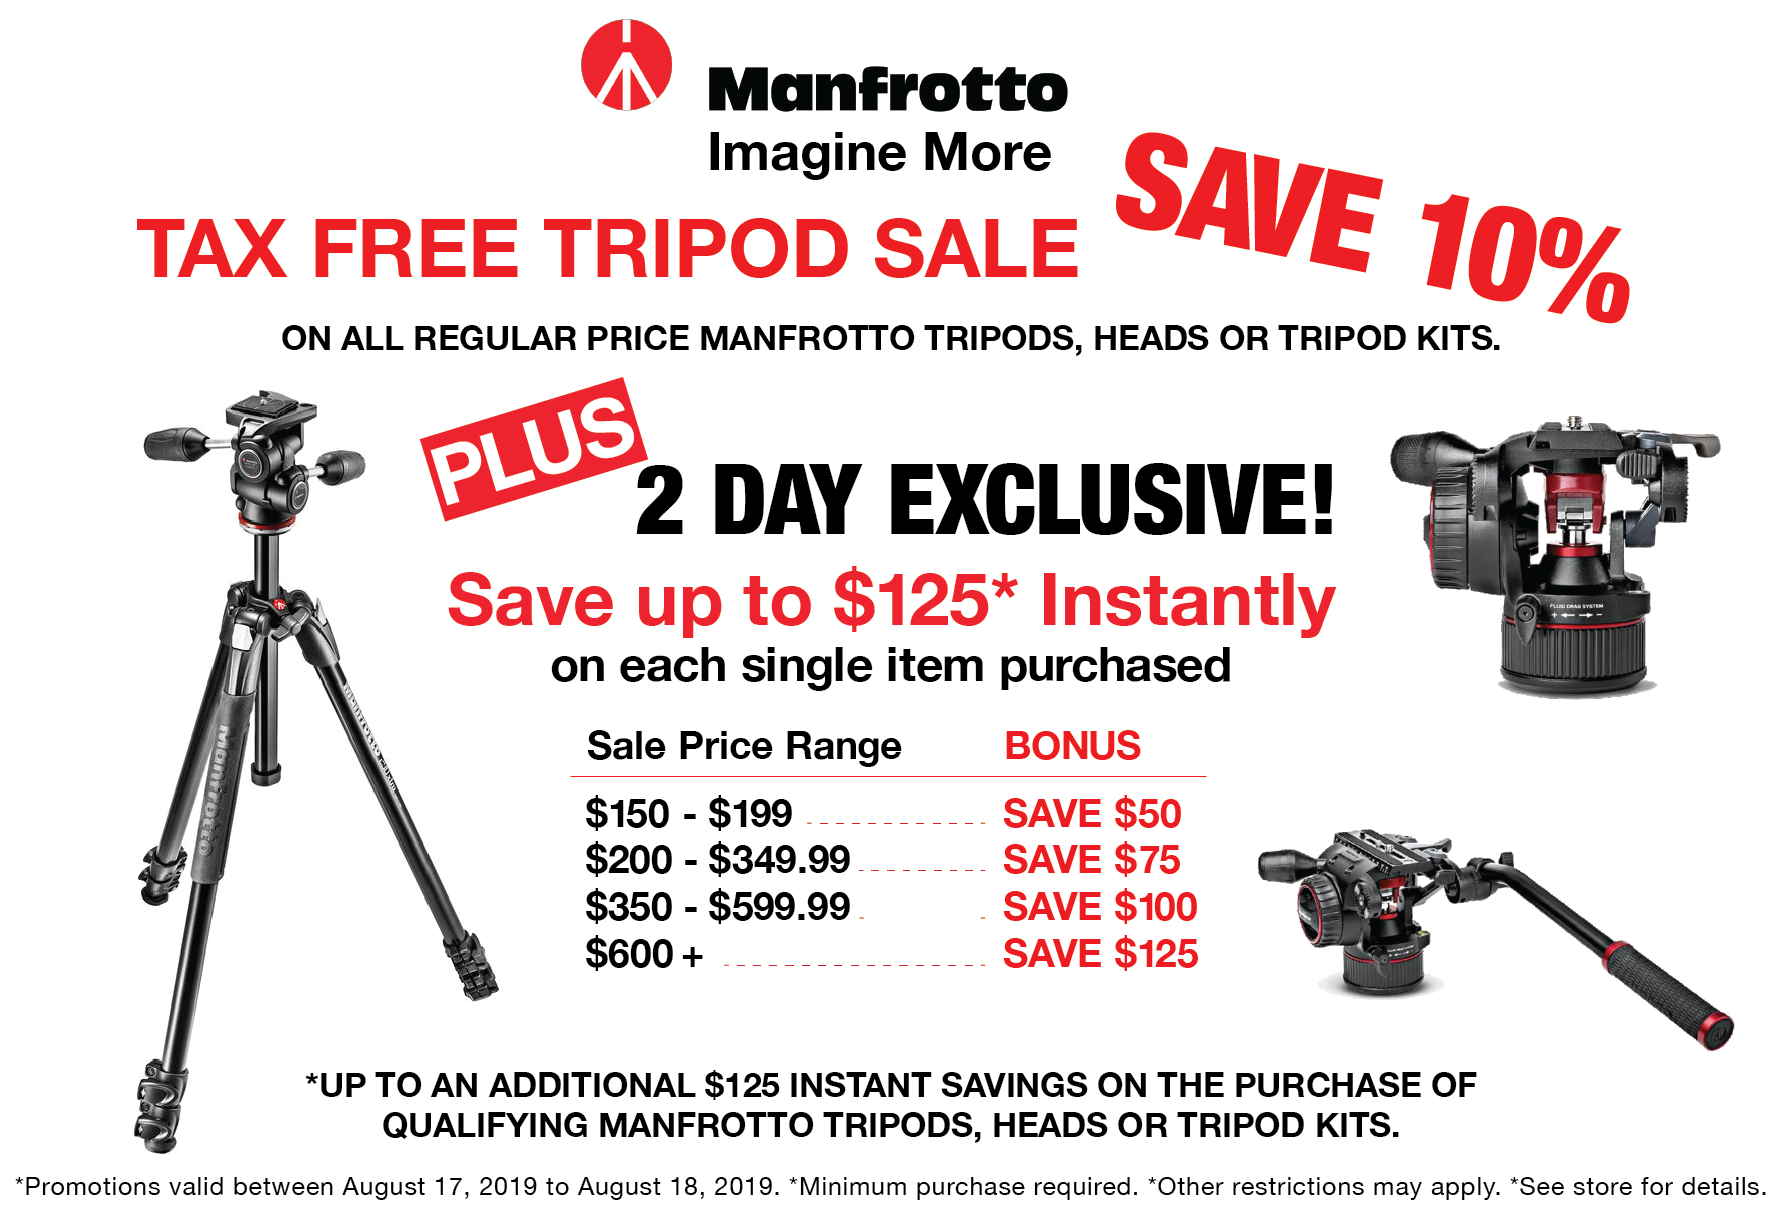 Manfrotto Tax Free Tripod Sale